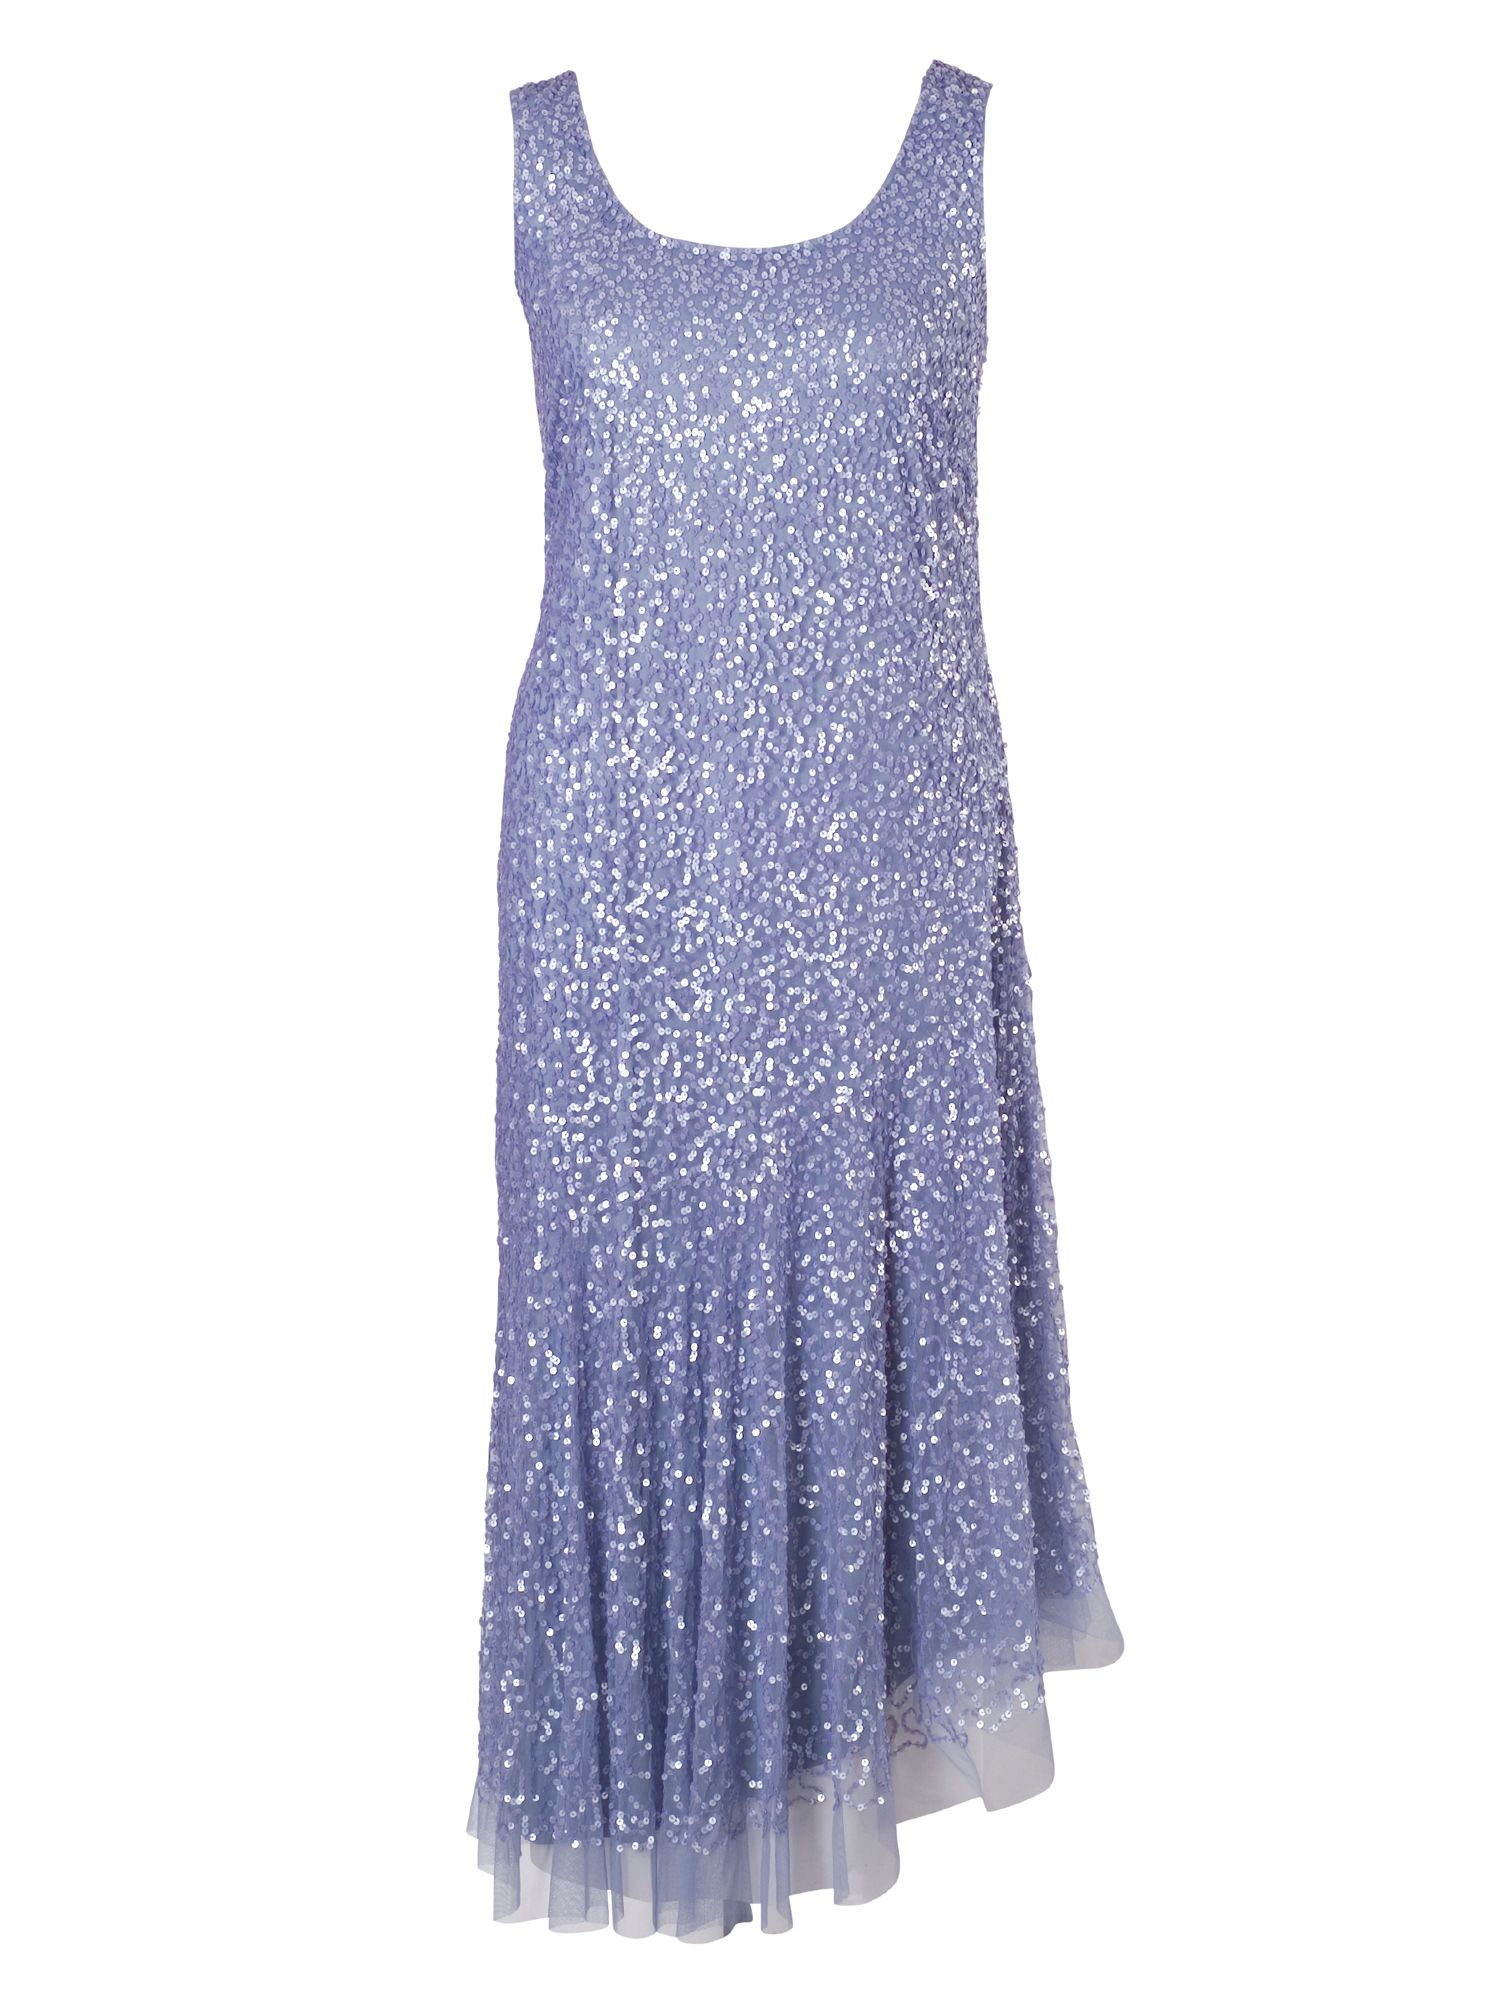 Chesca Matt Vermicelli Sequin Mesh Dress, Lilac